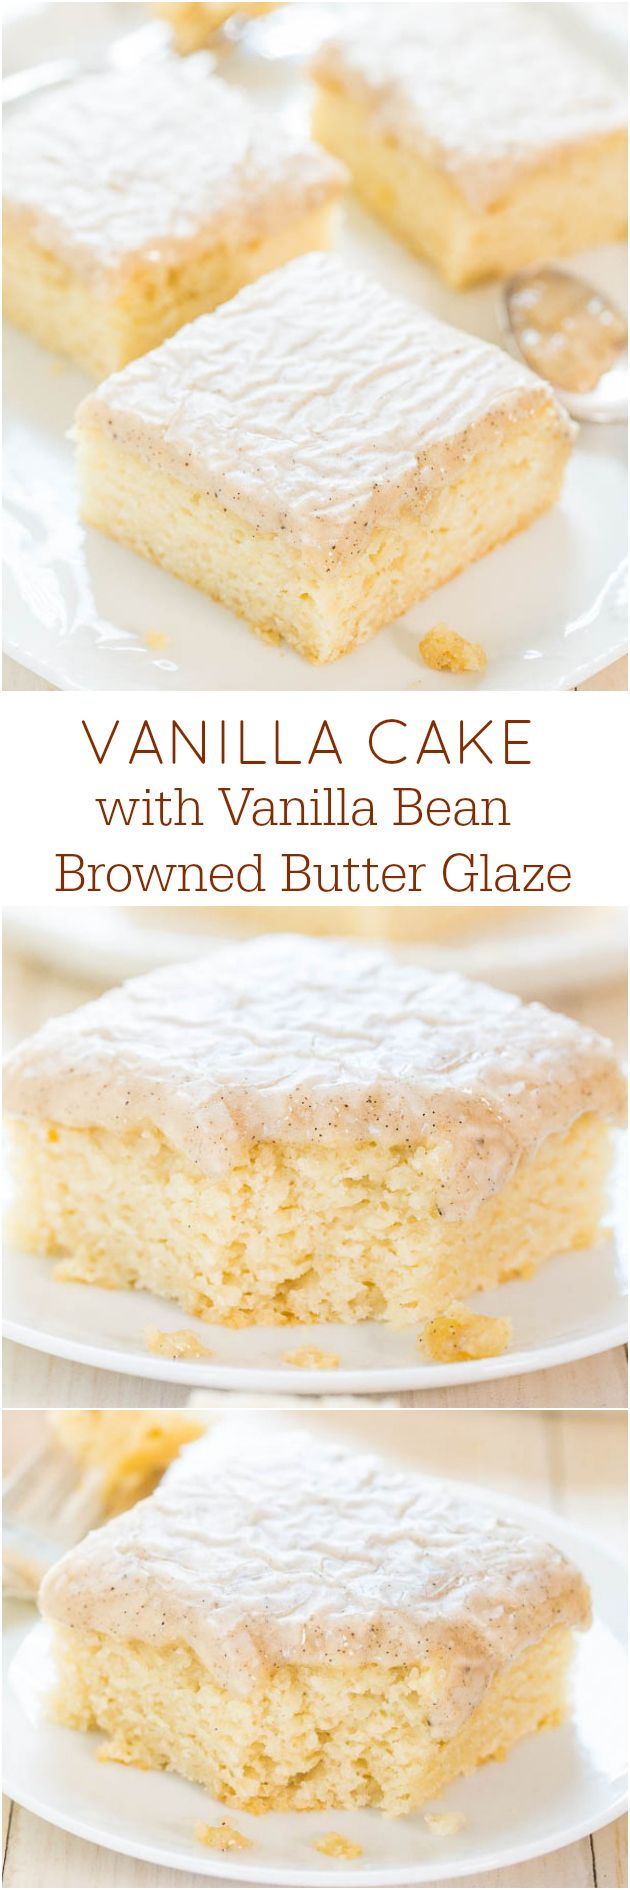 Sweet and yummy | Vanilla Cake with Vanilla Bean Browned Butter Glaze